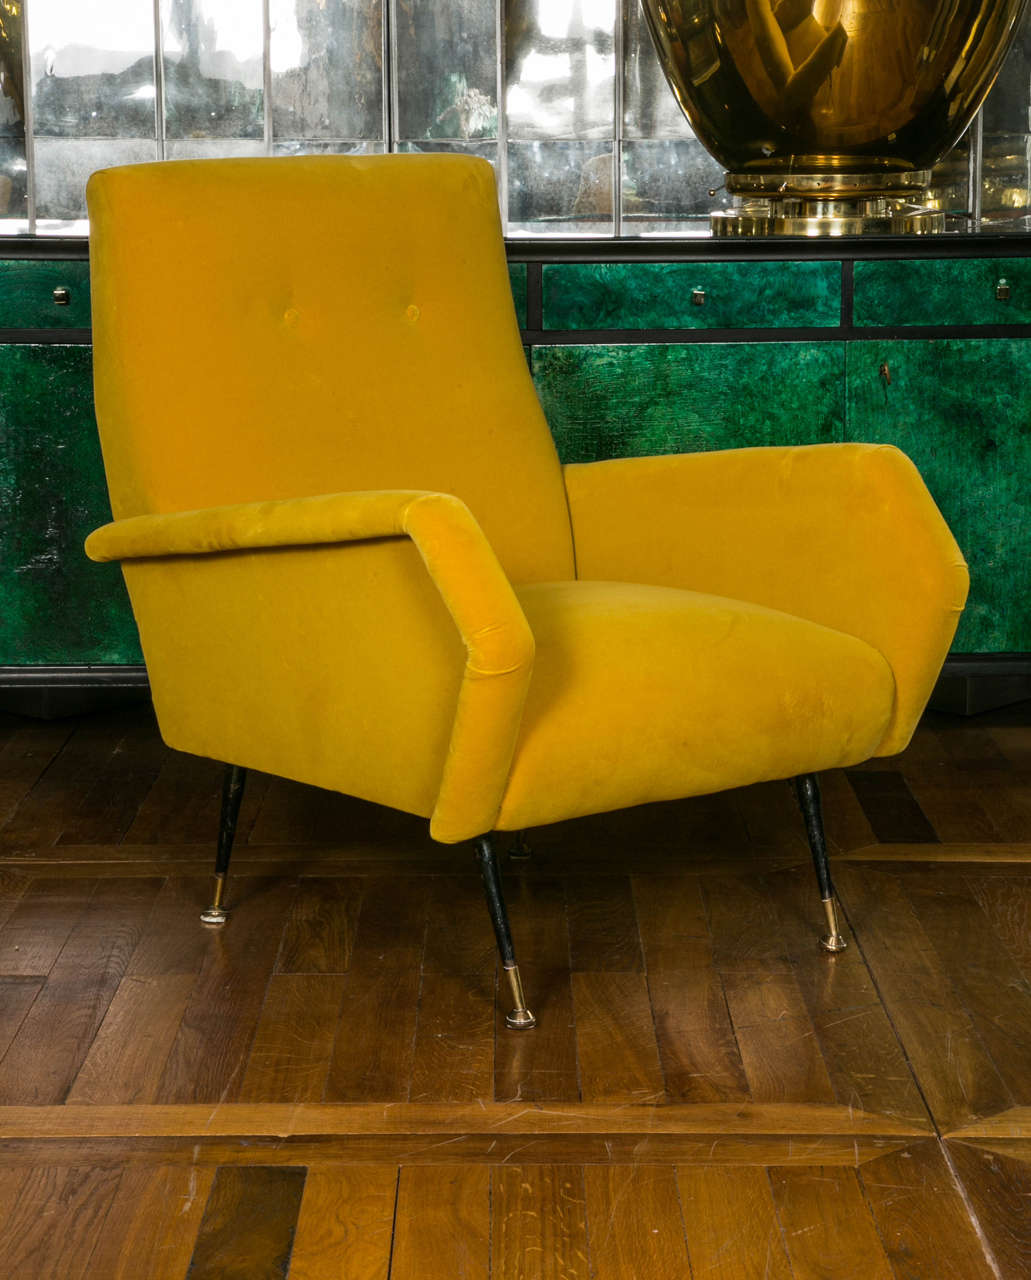 Pair of Italian midcentury armchairs in the style of Marco upholstered with Rubelli yellow velvet, four feet in black metal and brass